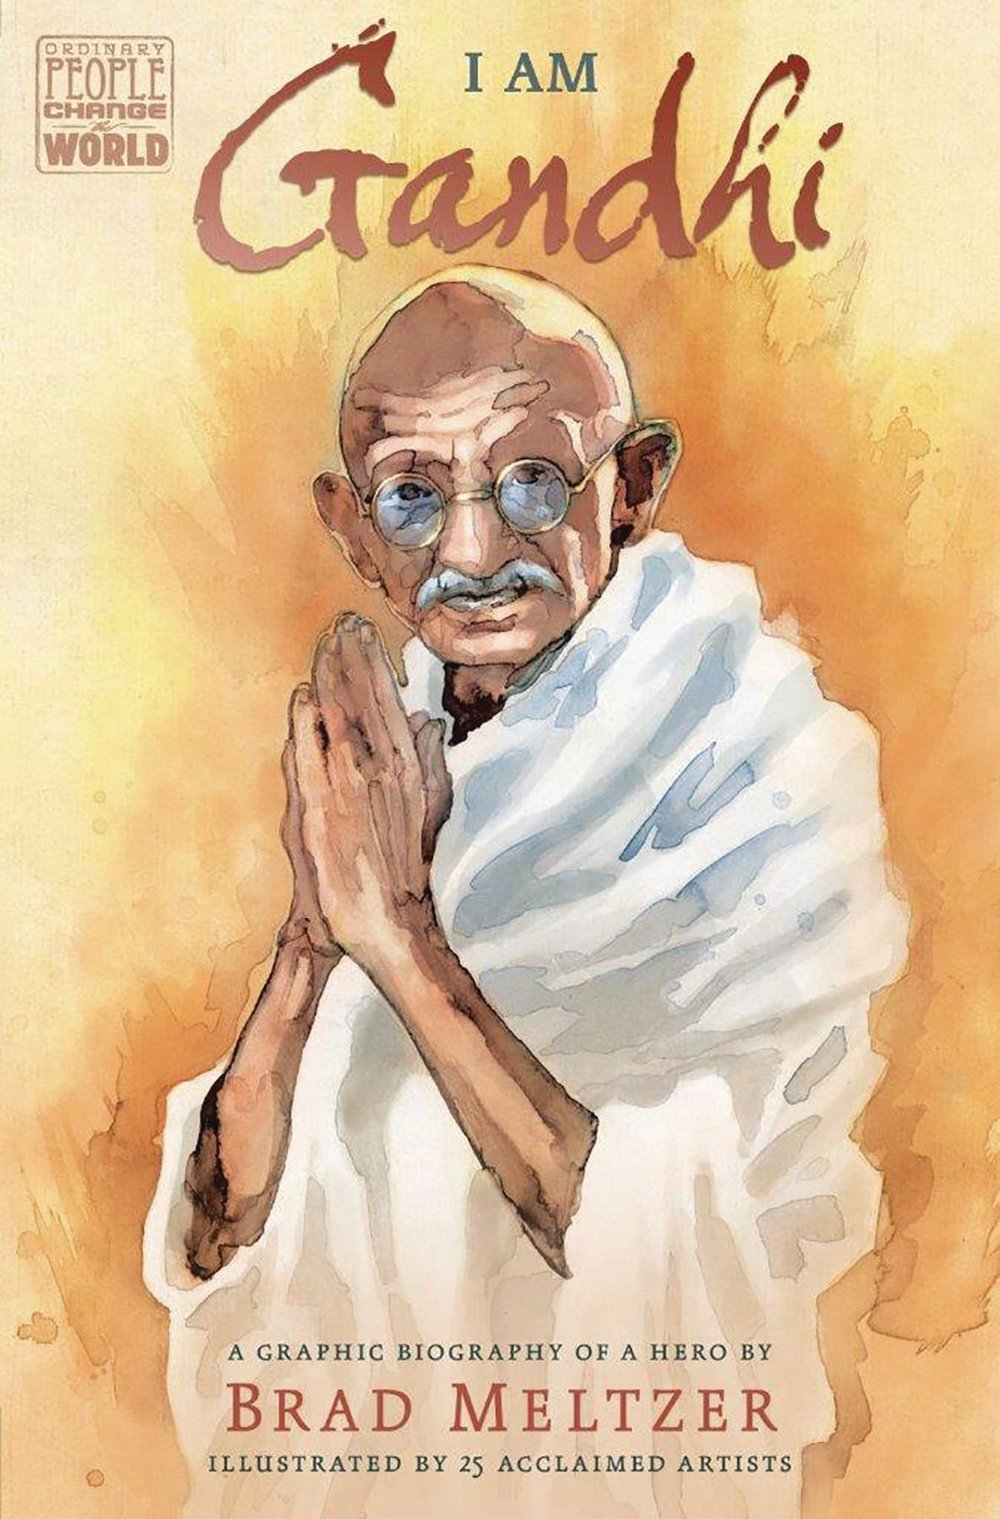 I AM GANDHI GRAPHIC BIOGRAPHY SC.jpg